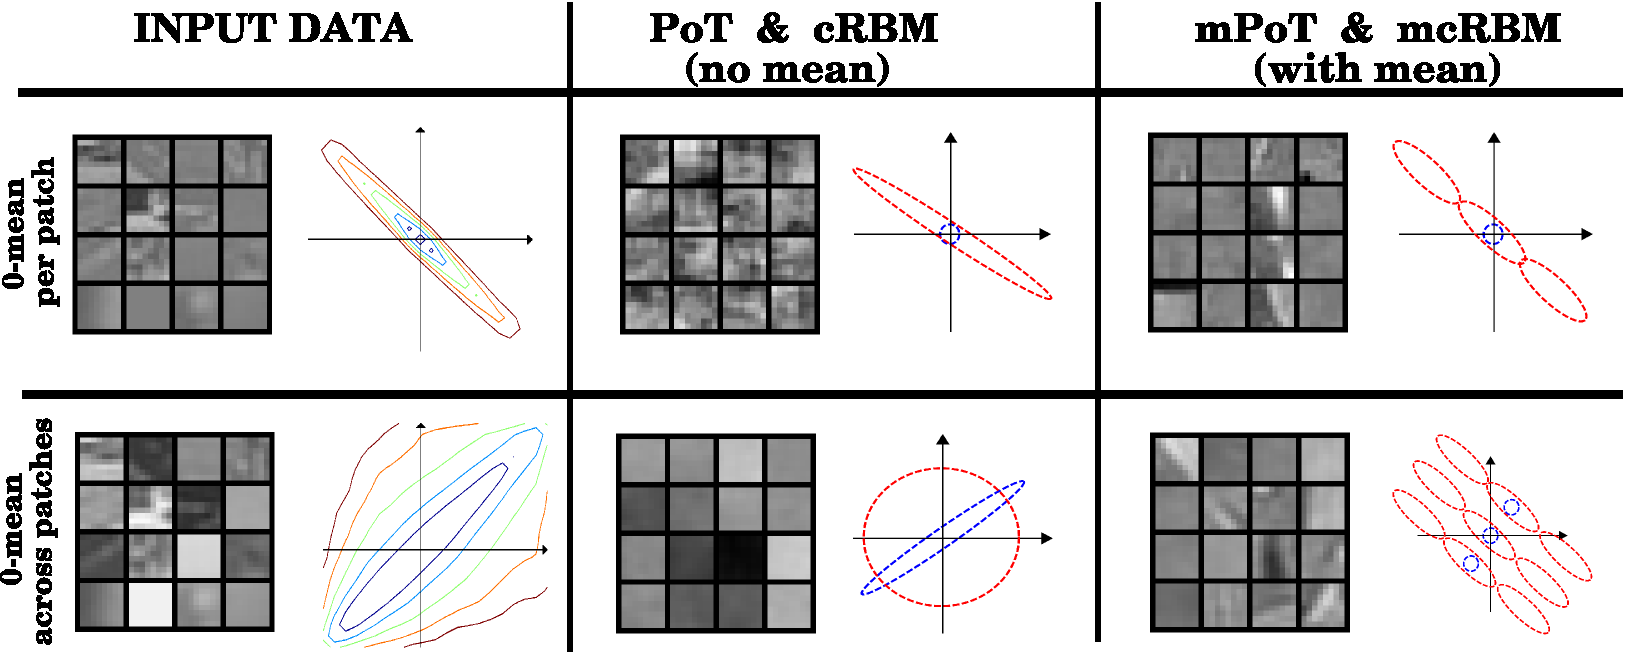 Figure 1: In the first row, each image is zero mean. In the second row, the whole set of data points is centered but each image can have non-zero mean.